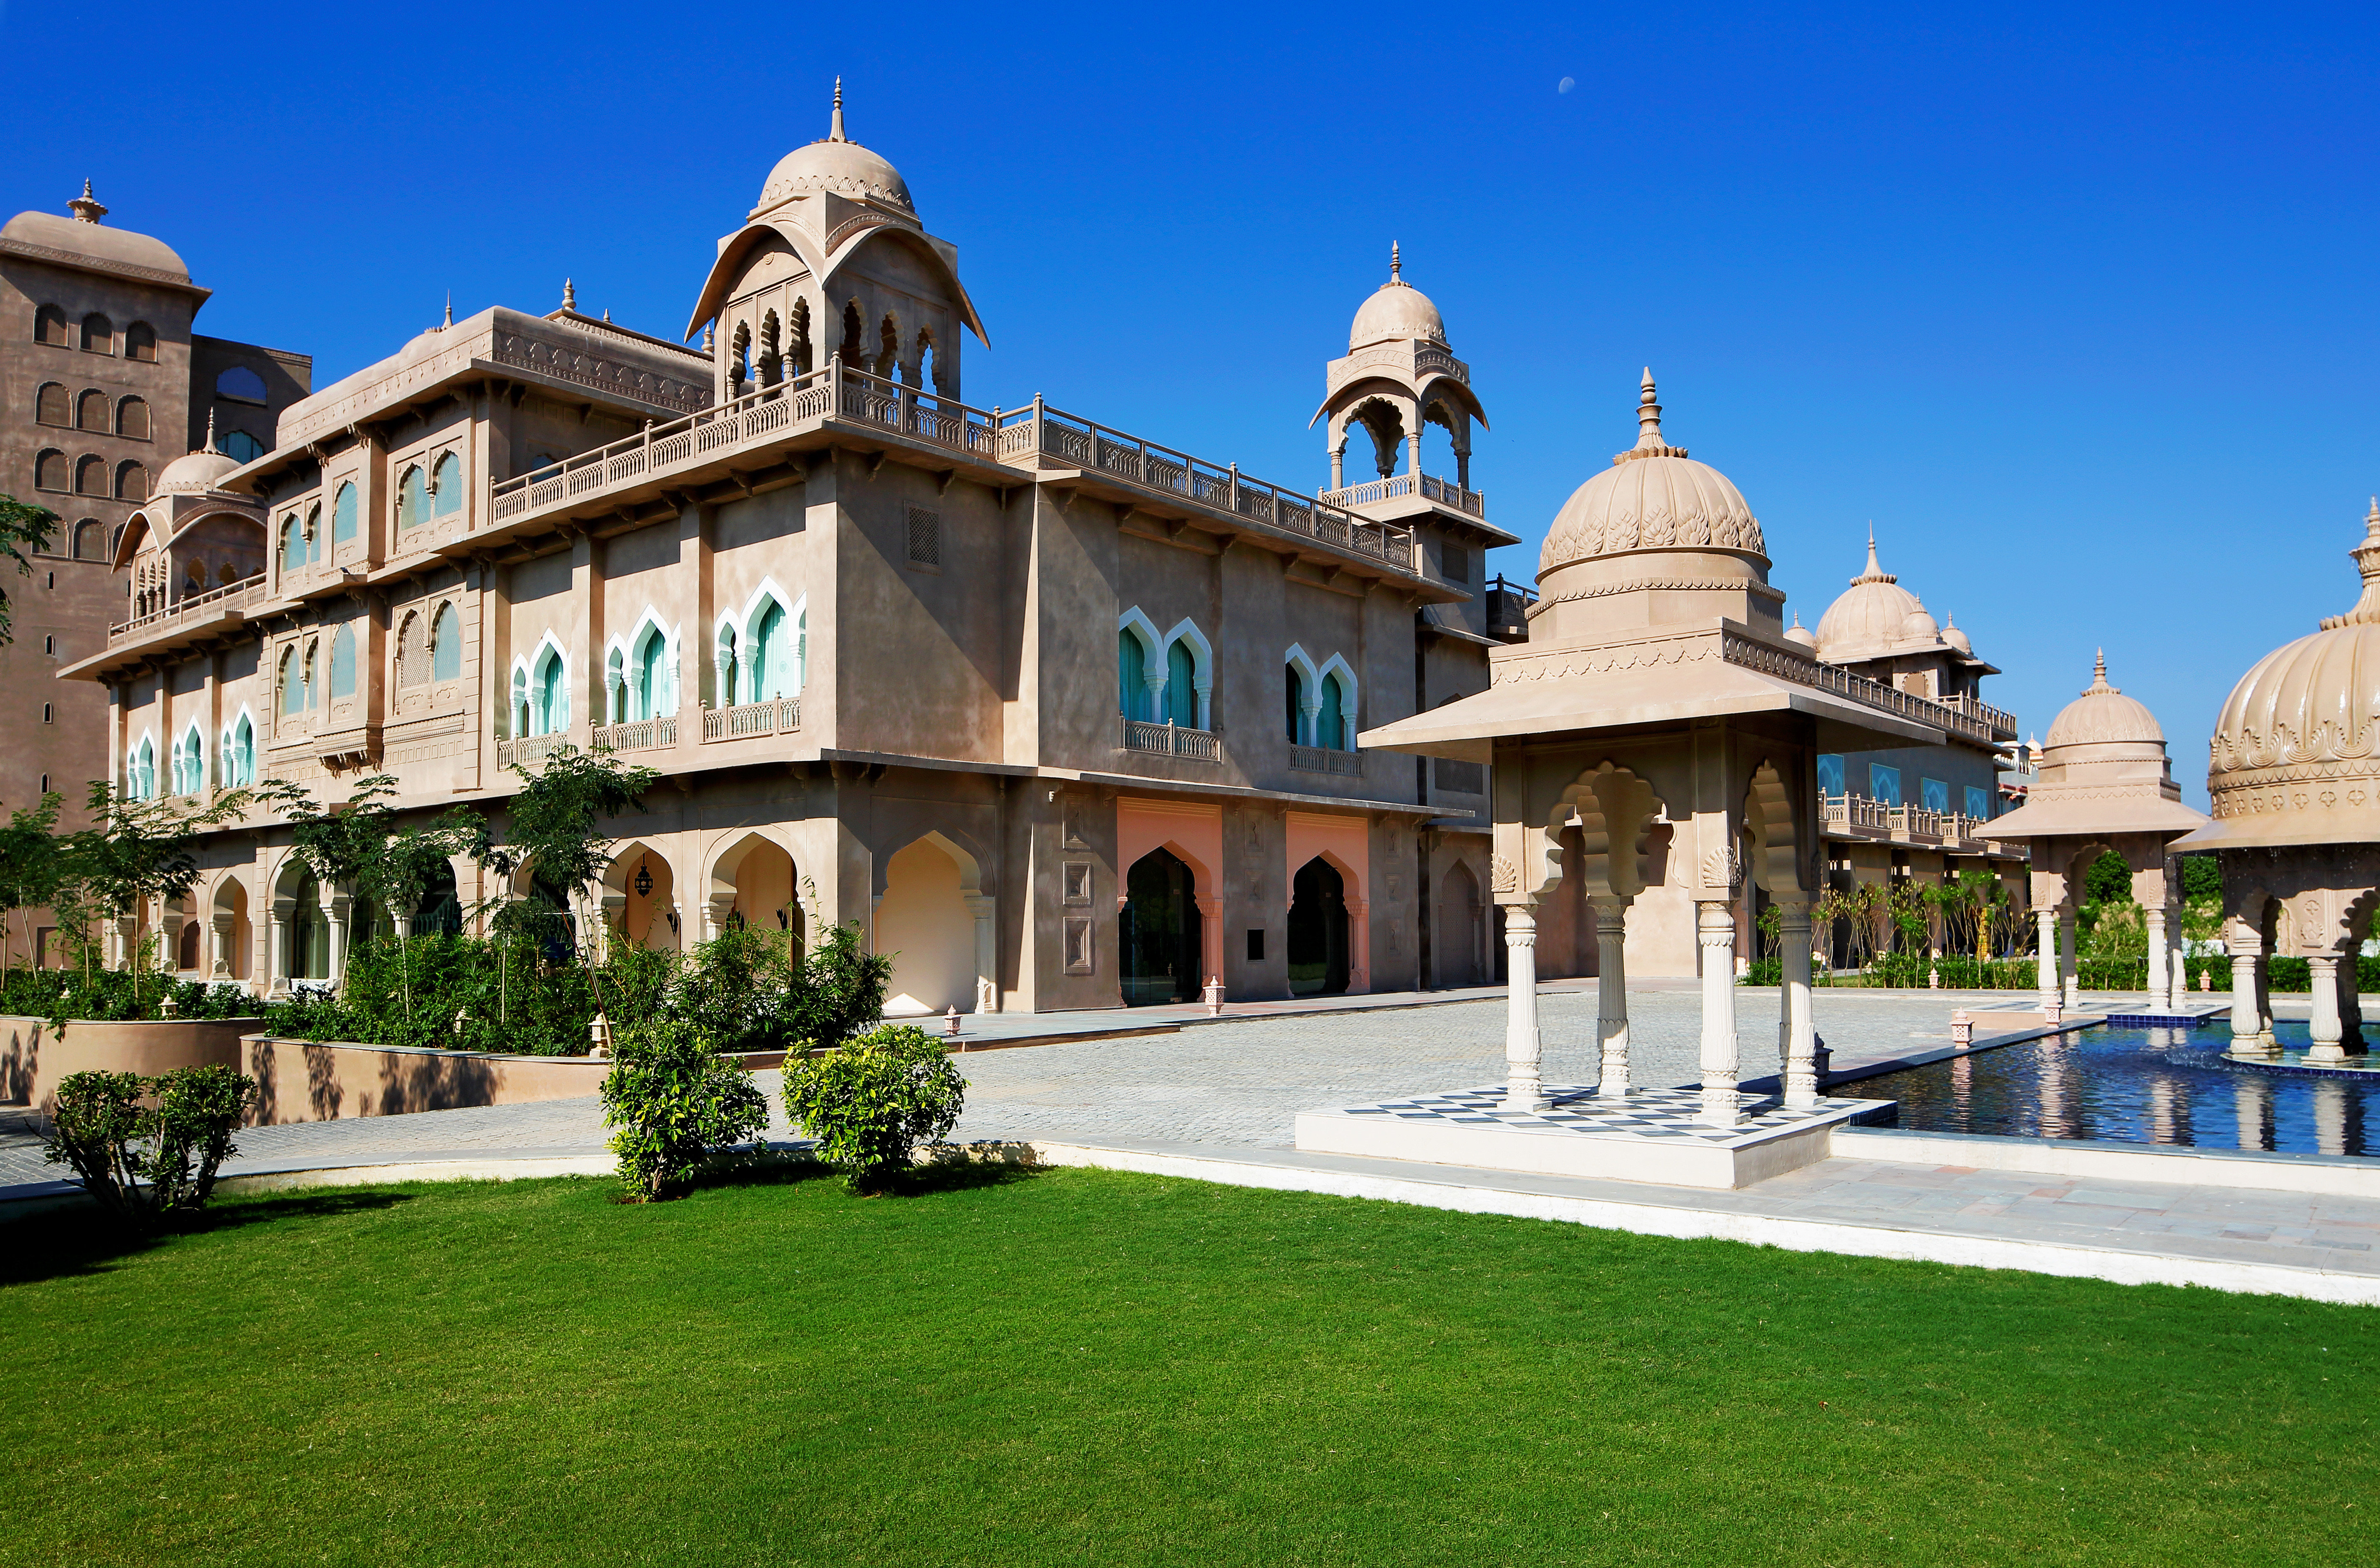 Architecture Buildings Exterior Garden Grounds Outdoors Pool grass sky building landmark Town palace plaza neighbourhood town square mansion château government building stone